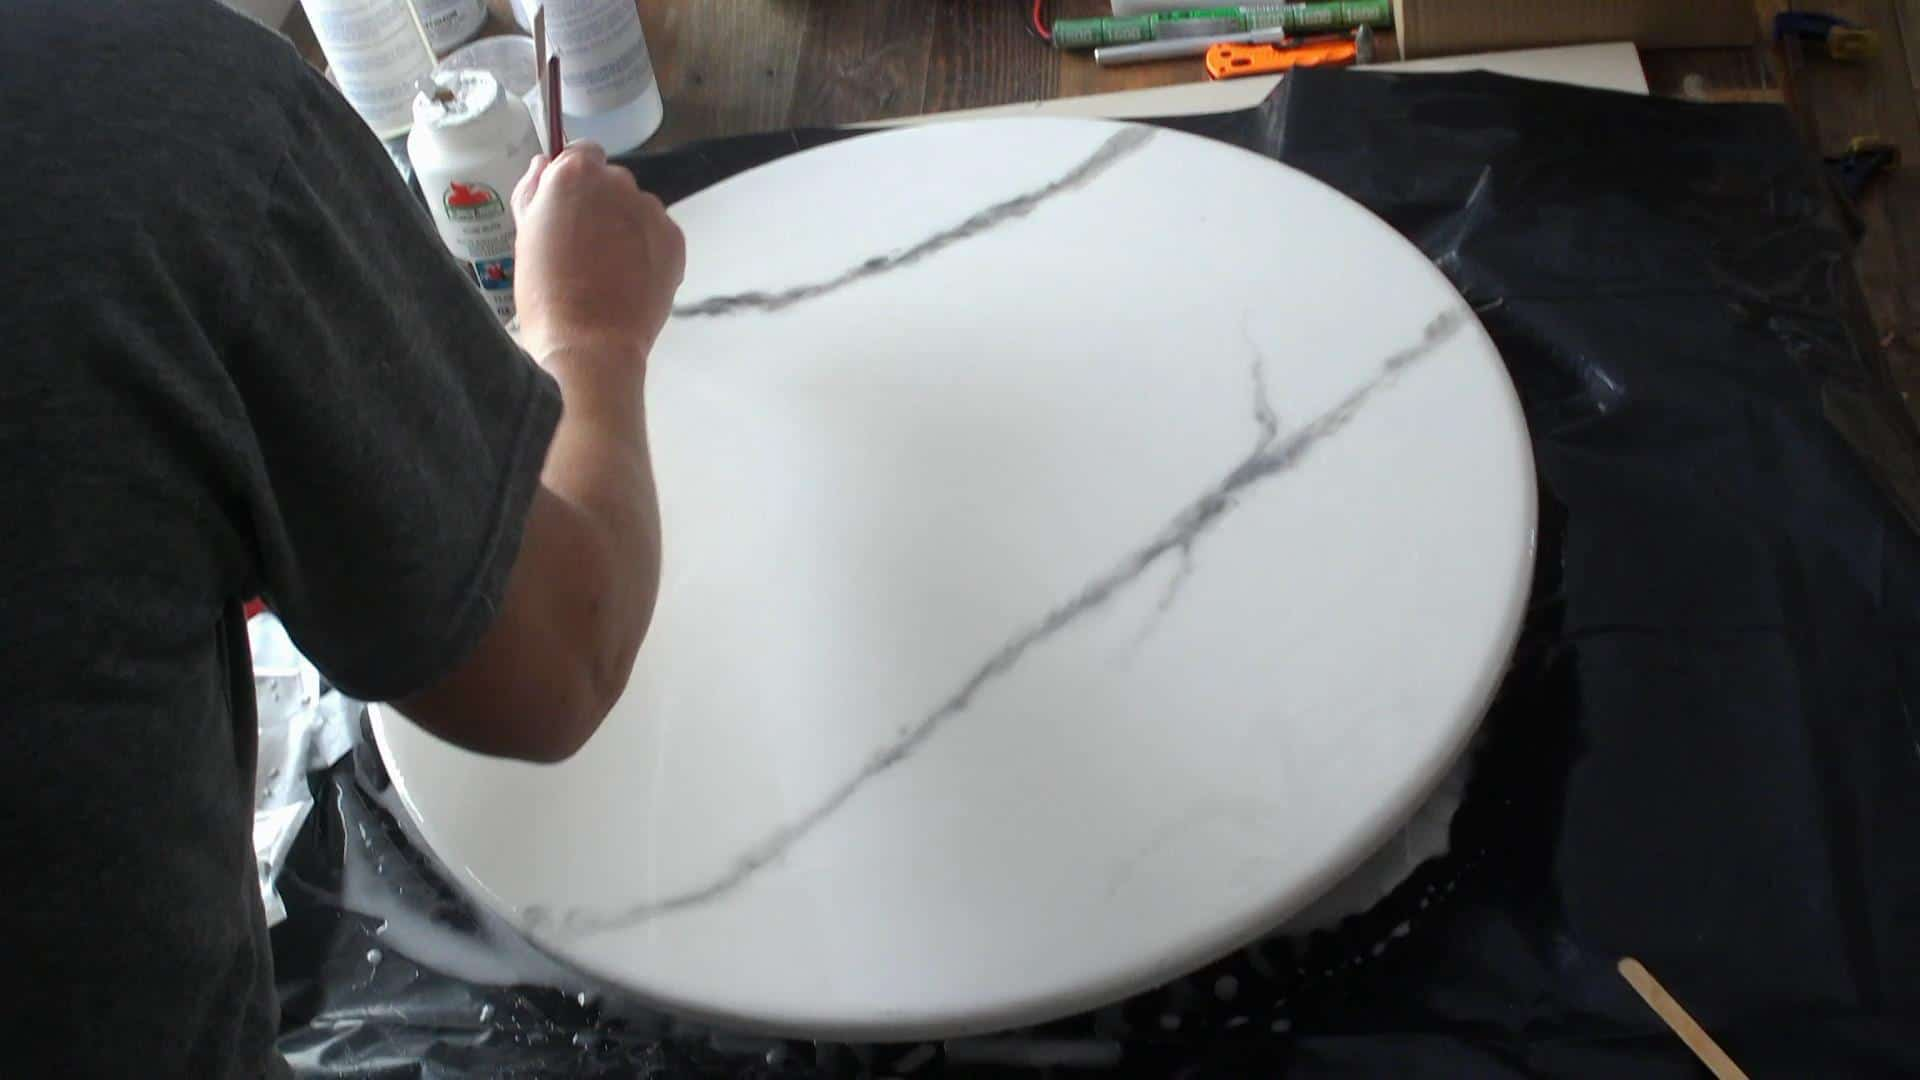 DIY Eposy Marble Table Top - How to pour the epoxy to make the fake marble top